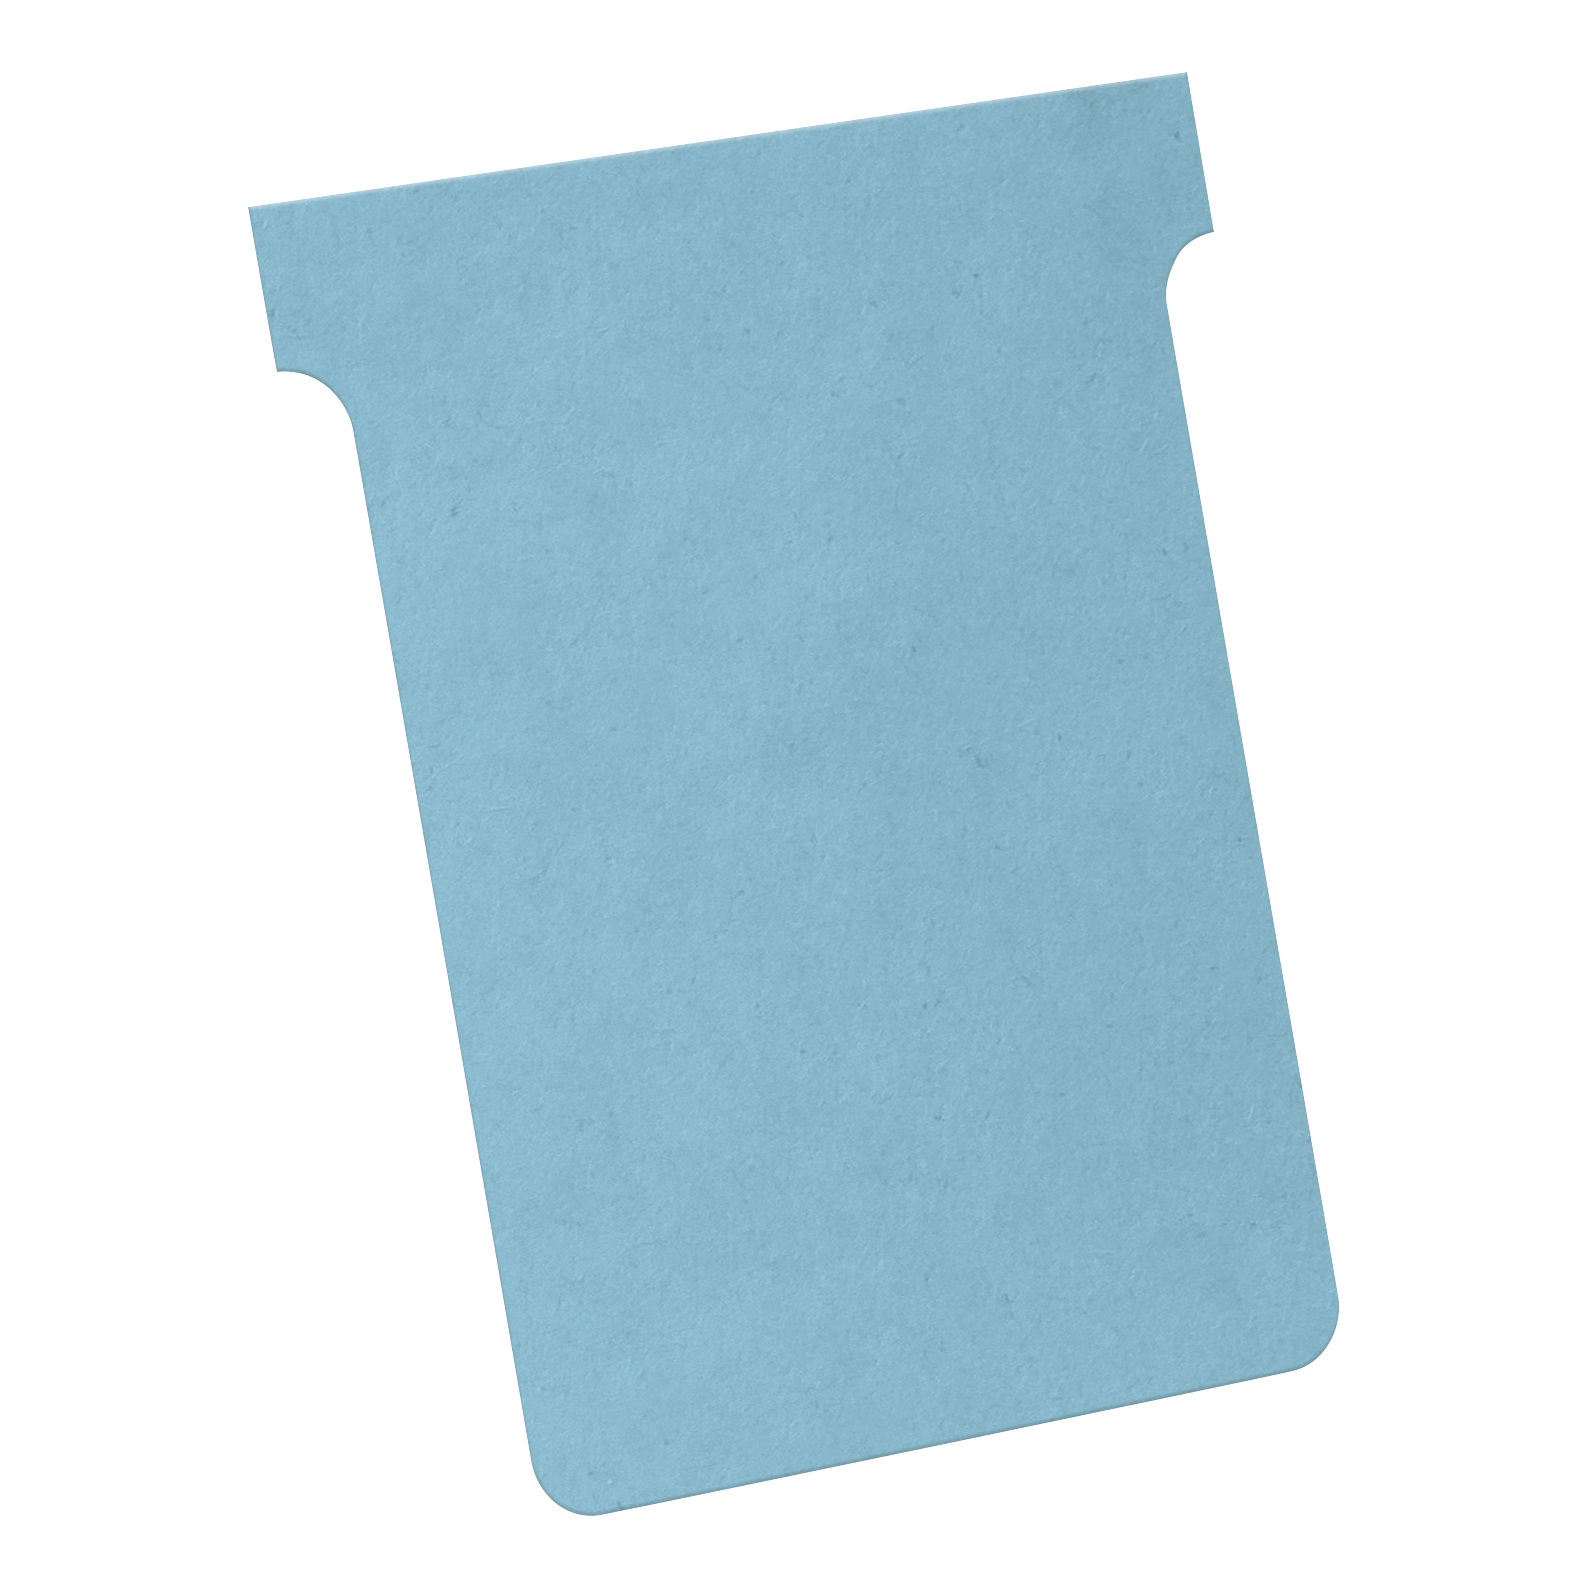 T Cards Nobo T-Cards 160gsm Tab Top 15mm W92x Bottom W80x Full H120mm Size 3 Light Blue Ref 2003006 Pack 100